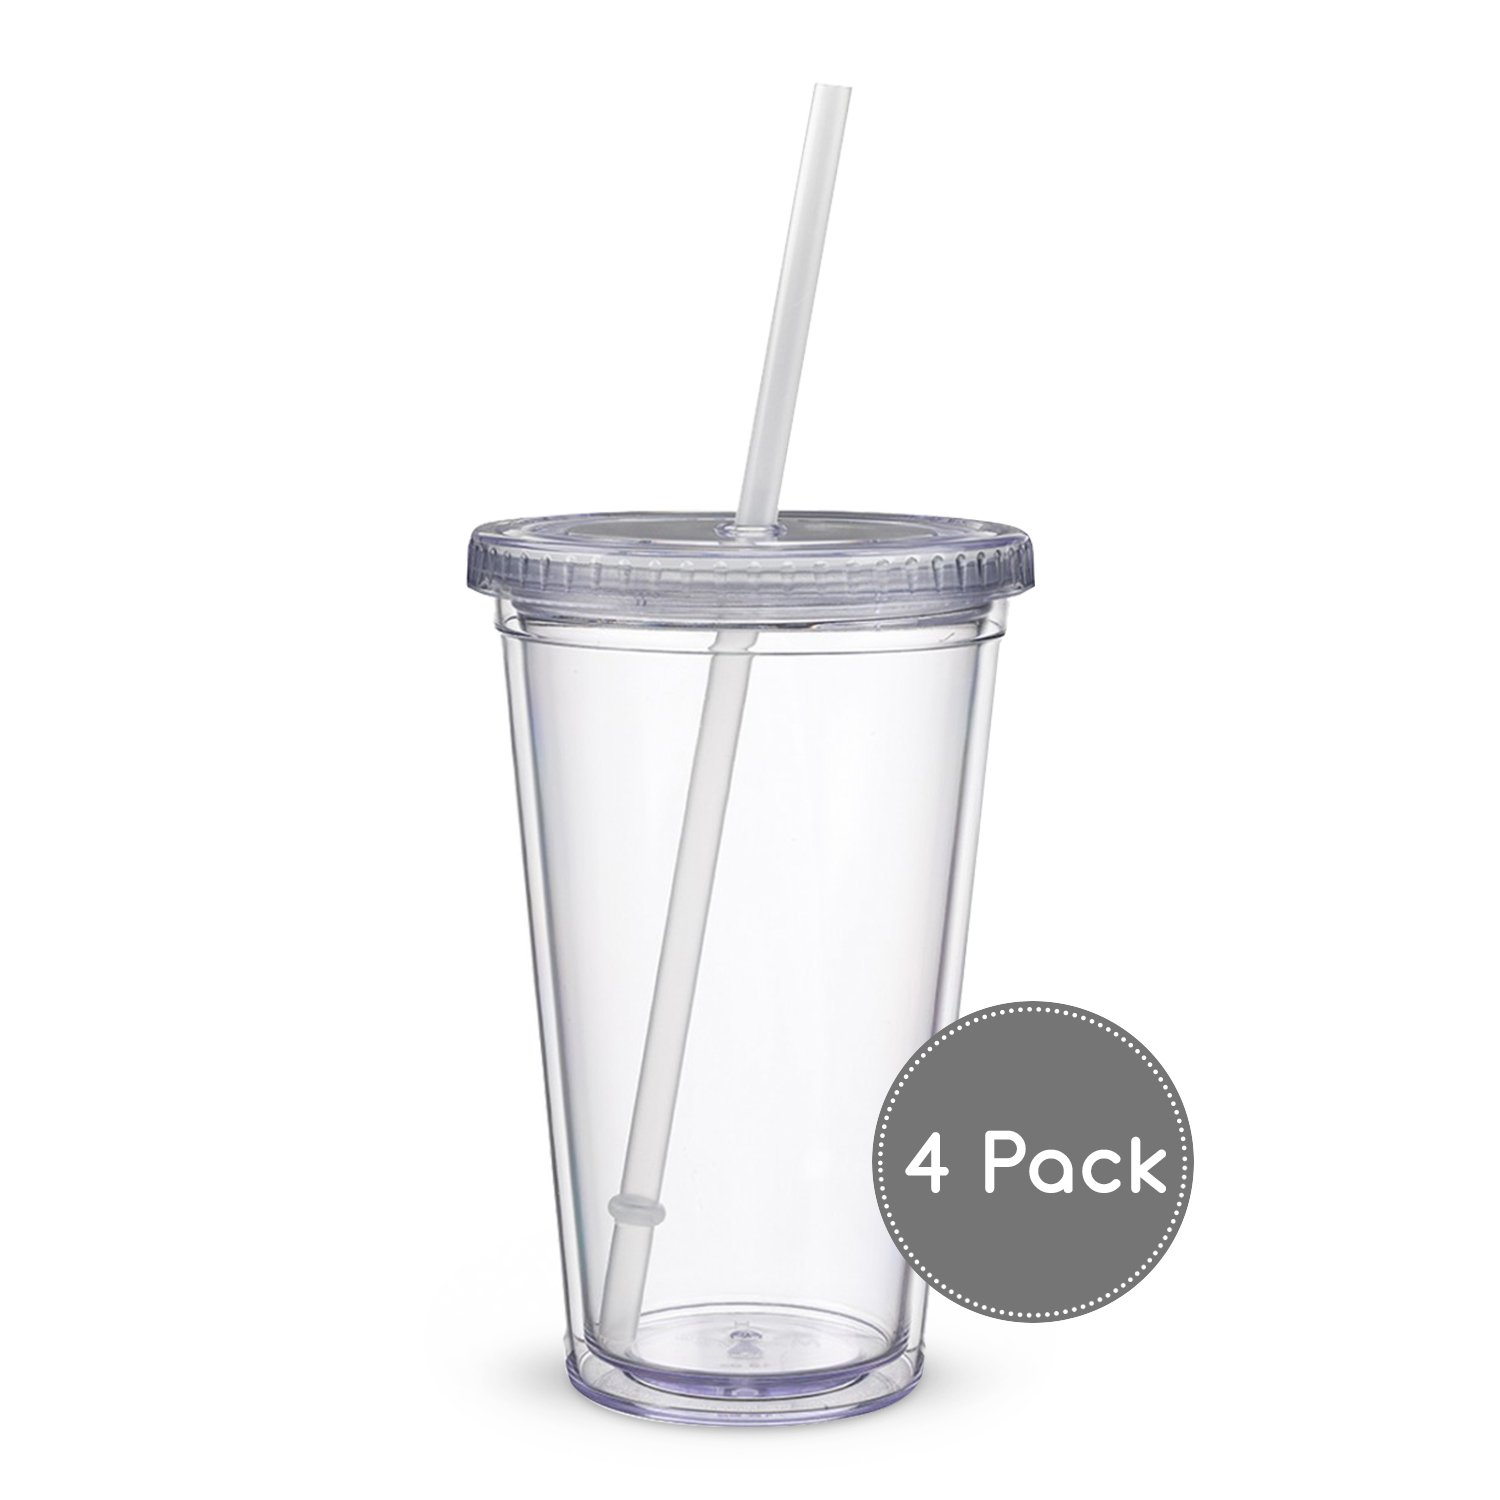 Maars Classic Insulated Tumblers 16 oz. | Double Wall Acrylic | 4 pack by Maars® Drinkware (Image #3)